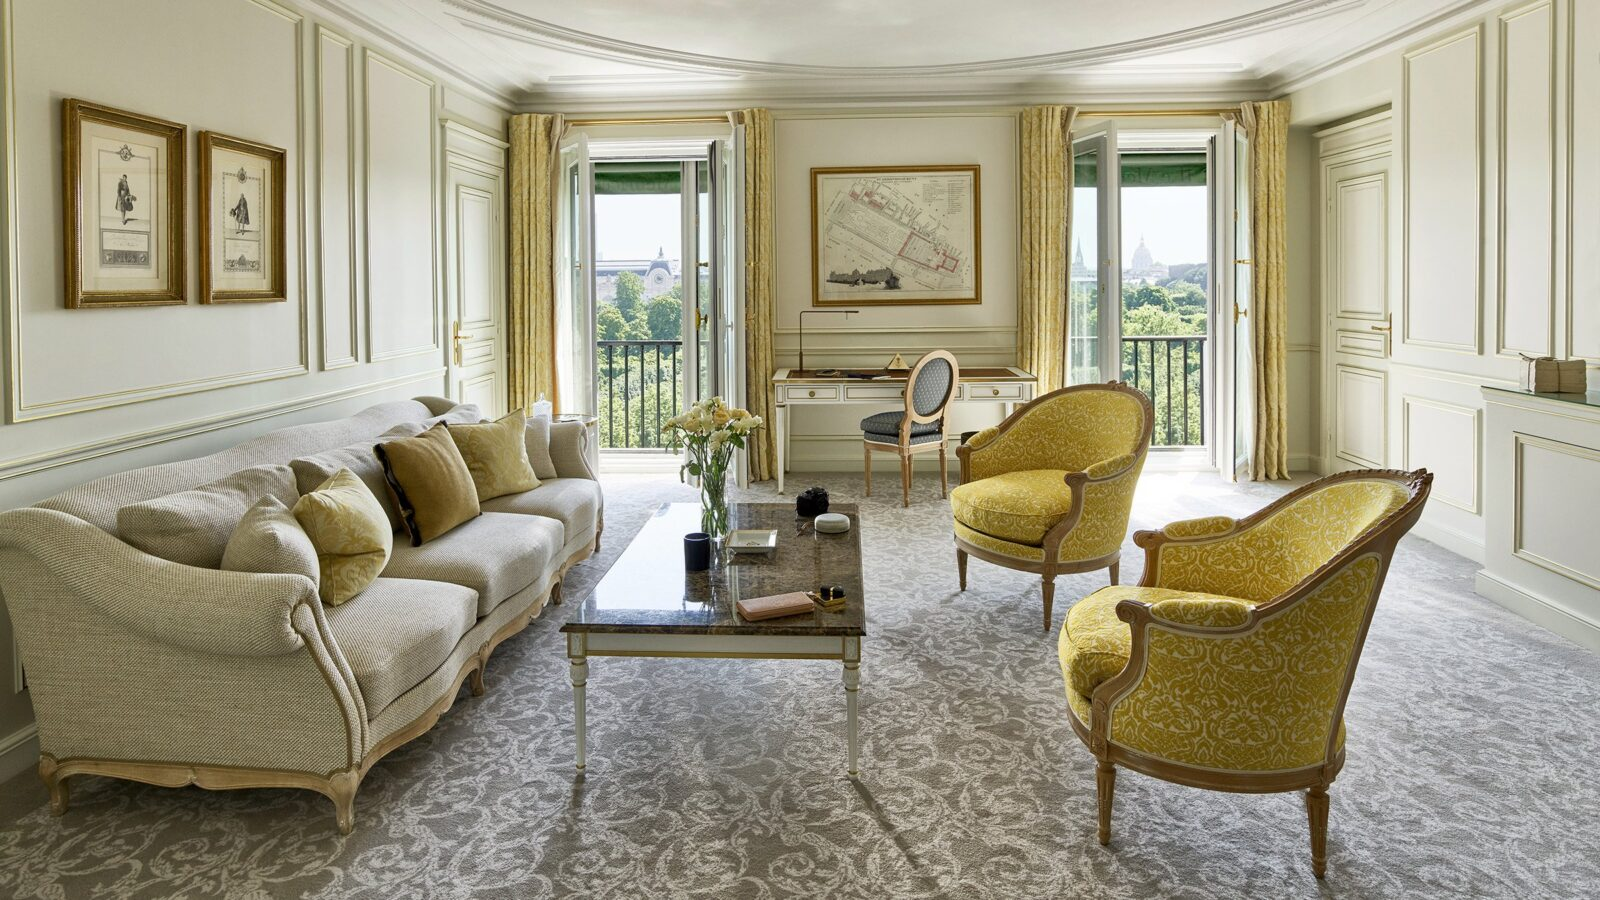 Suite Prestige at Le Meurice, Paris